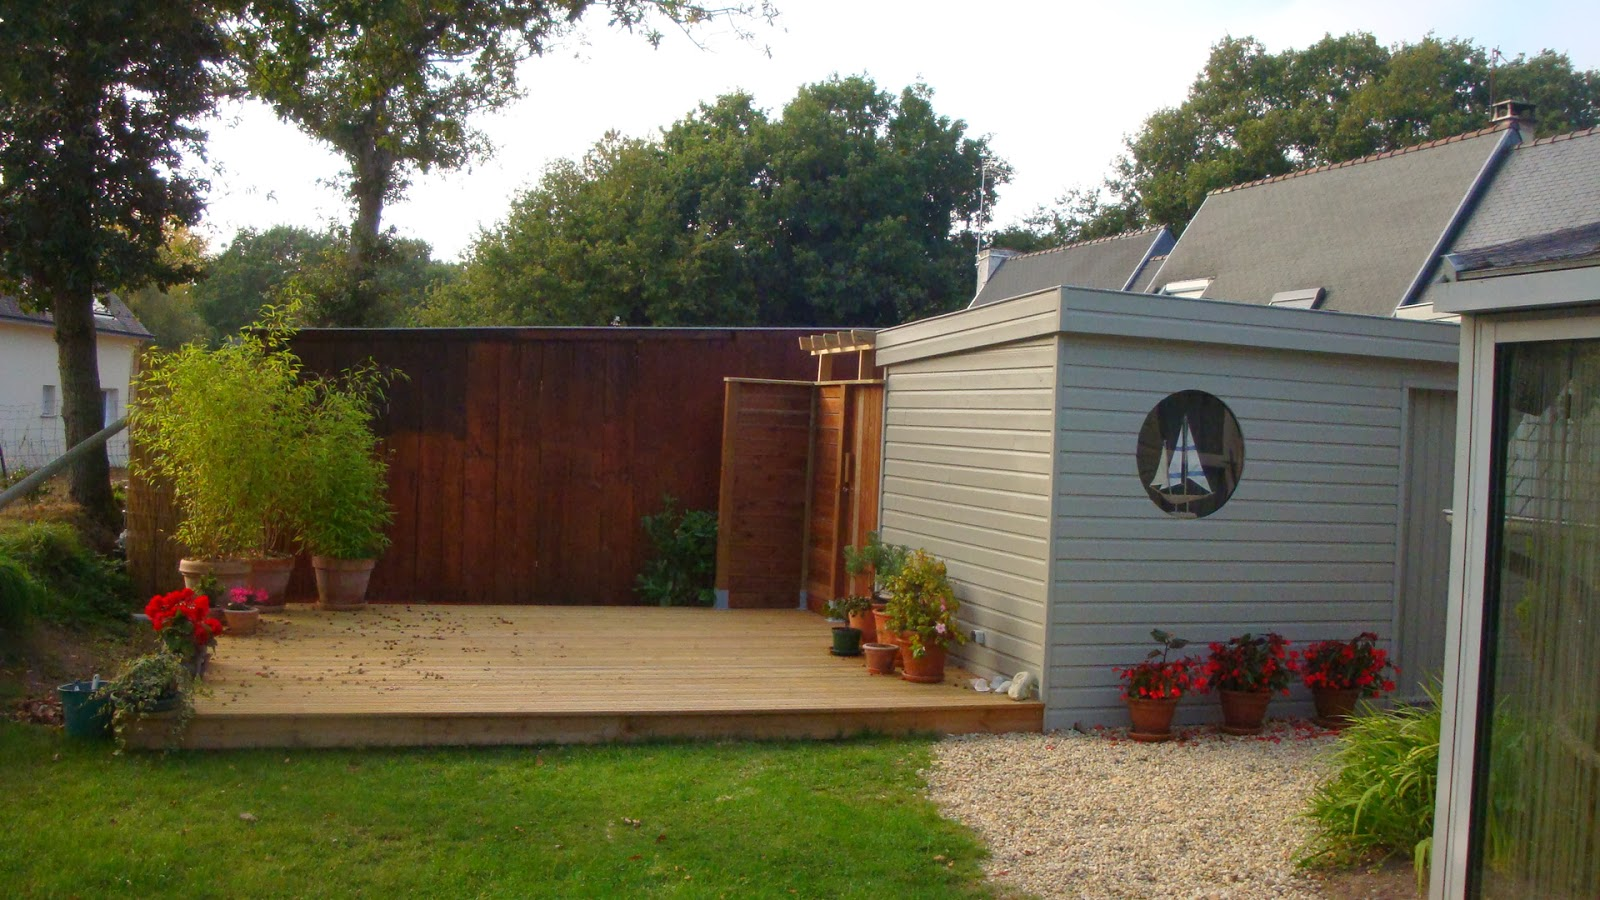 Michel le coz agencement d coration ext rieur car port for Abri de jardin toit terrasse